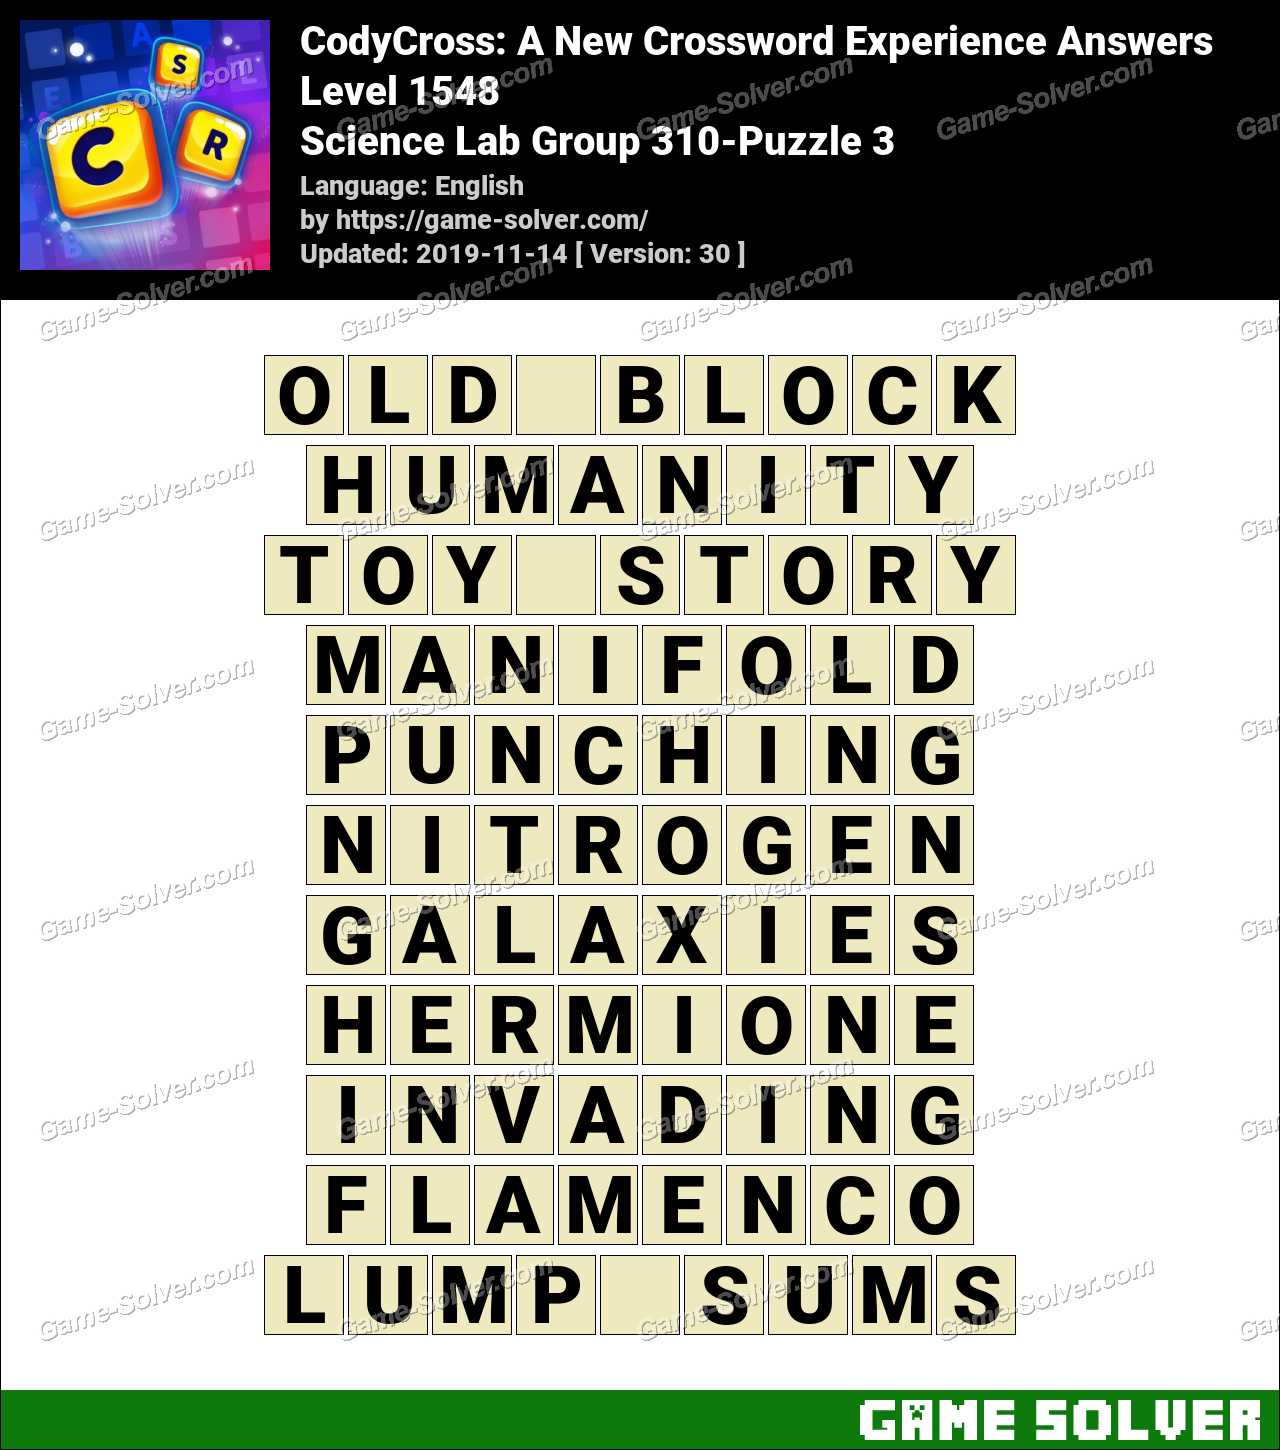 CodyCross Science Lab Group 310-Puzzle 3 Answers